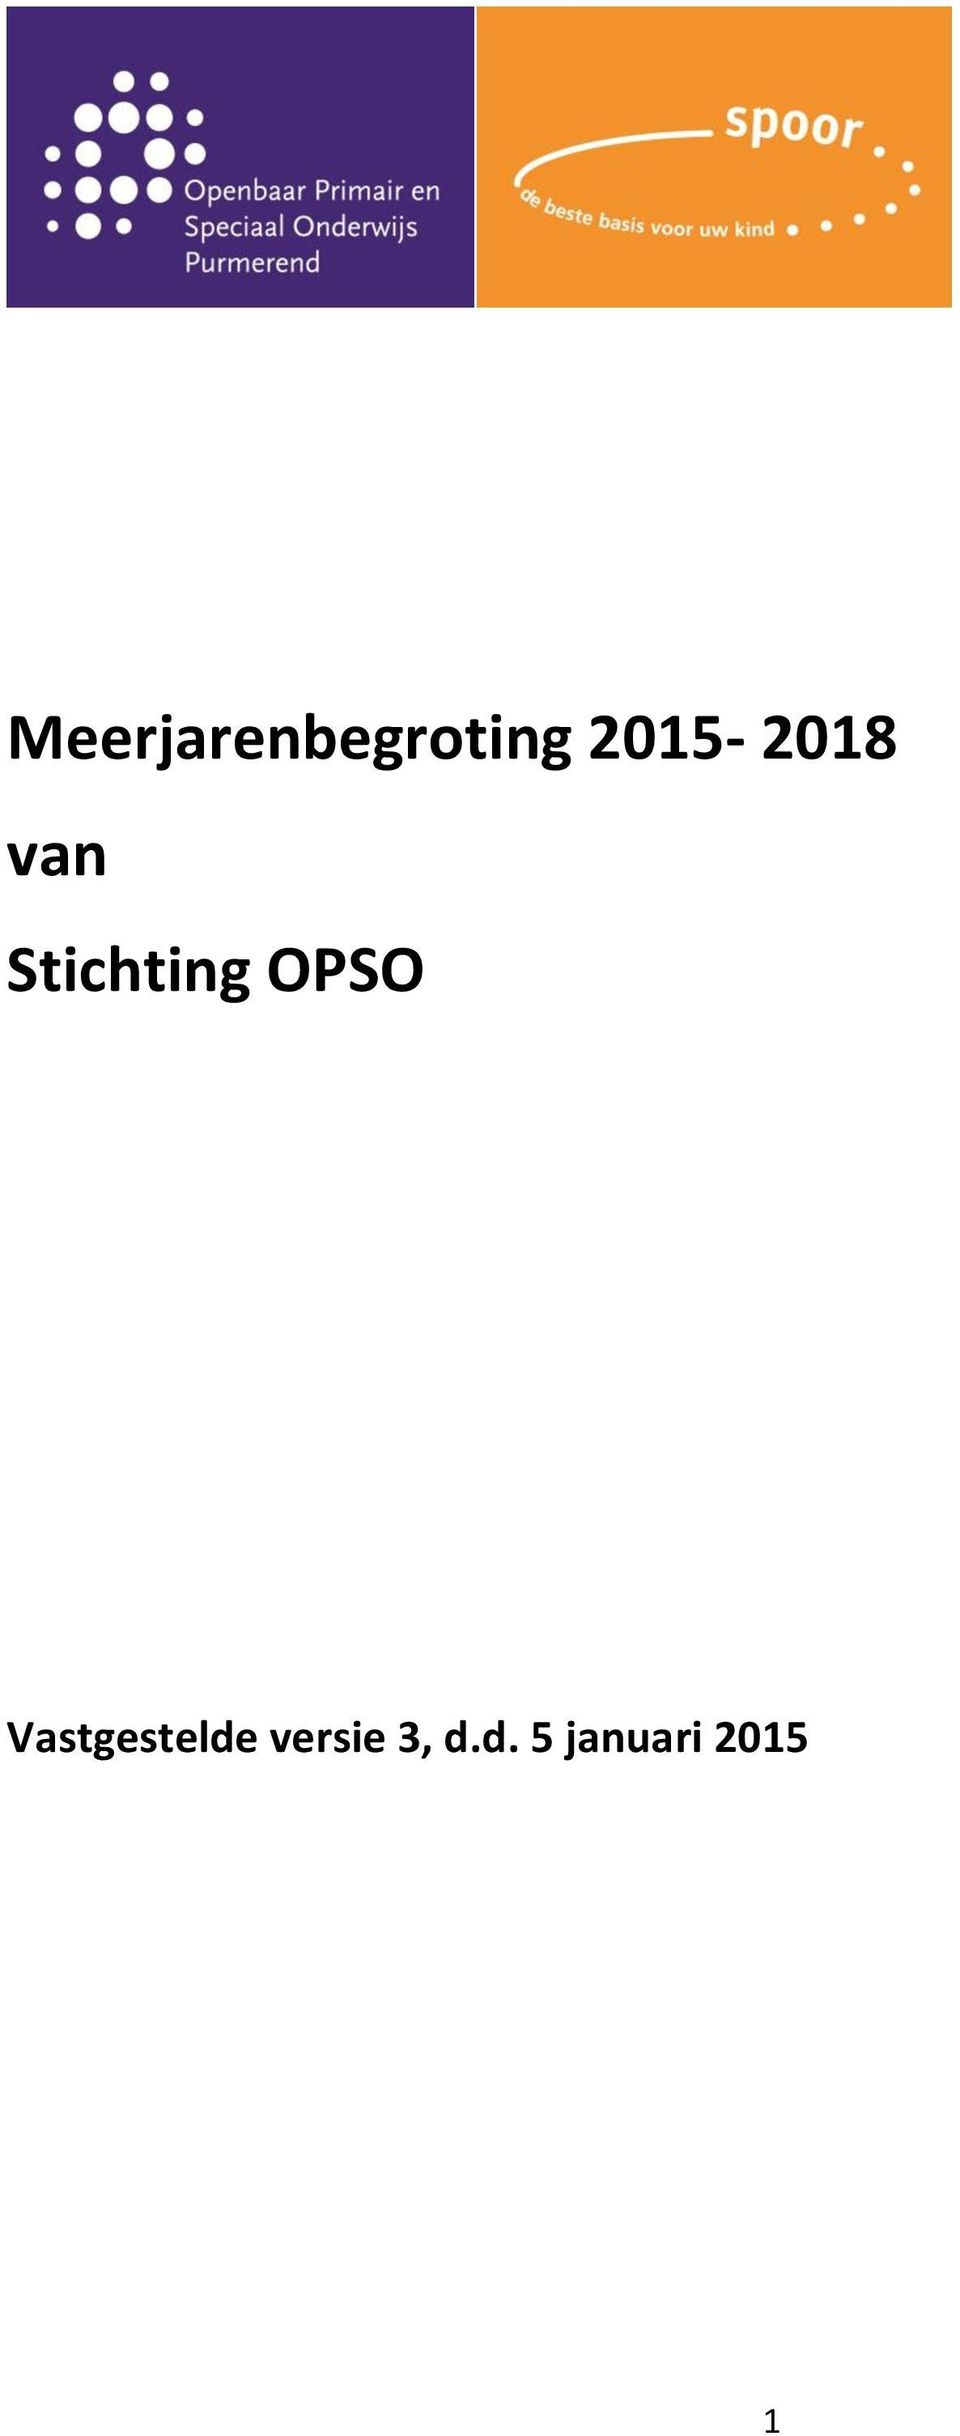 Stichting OPSO